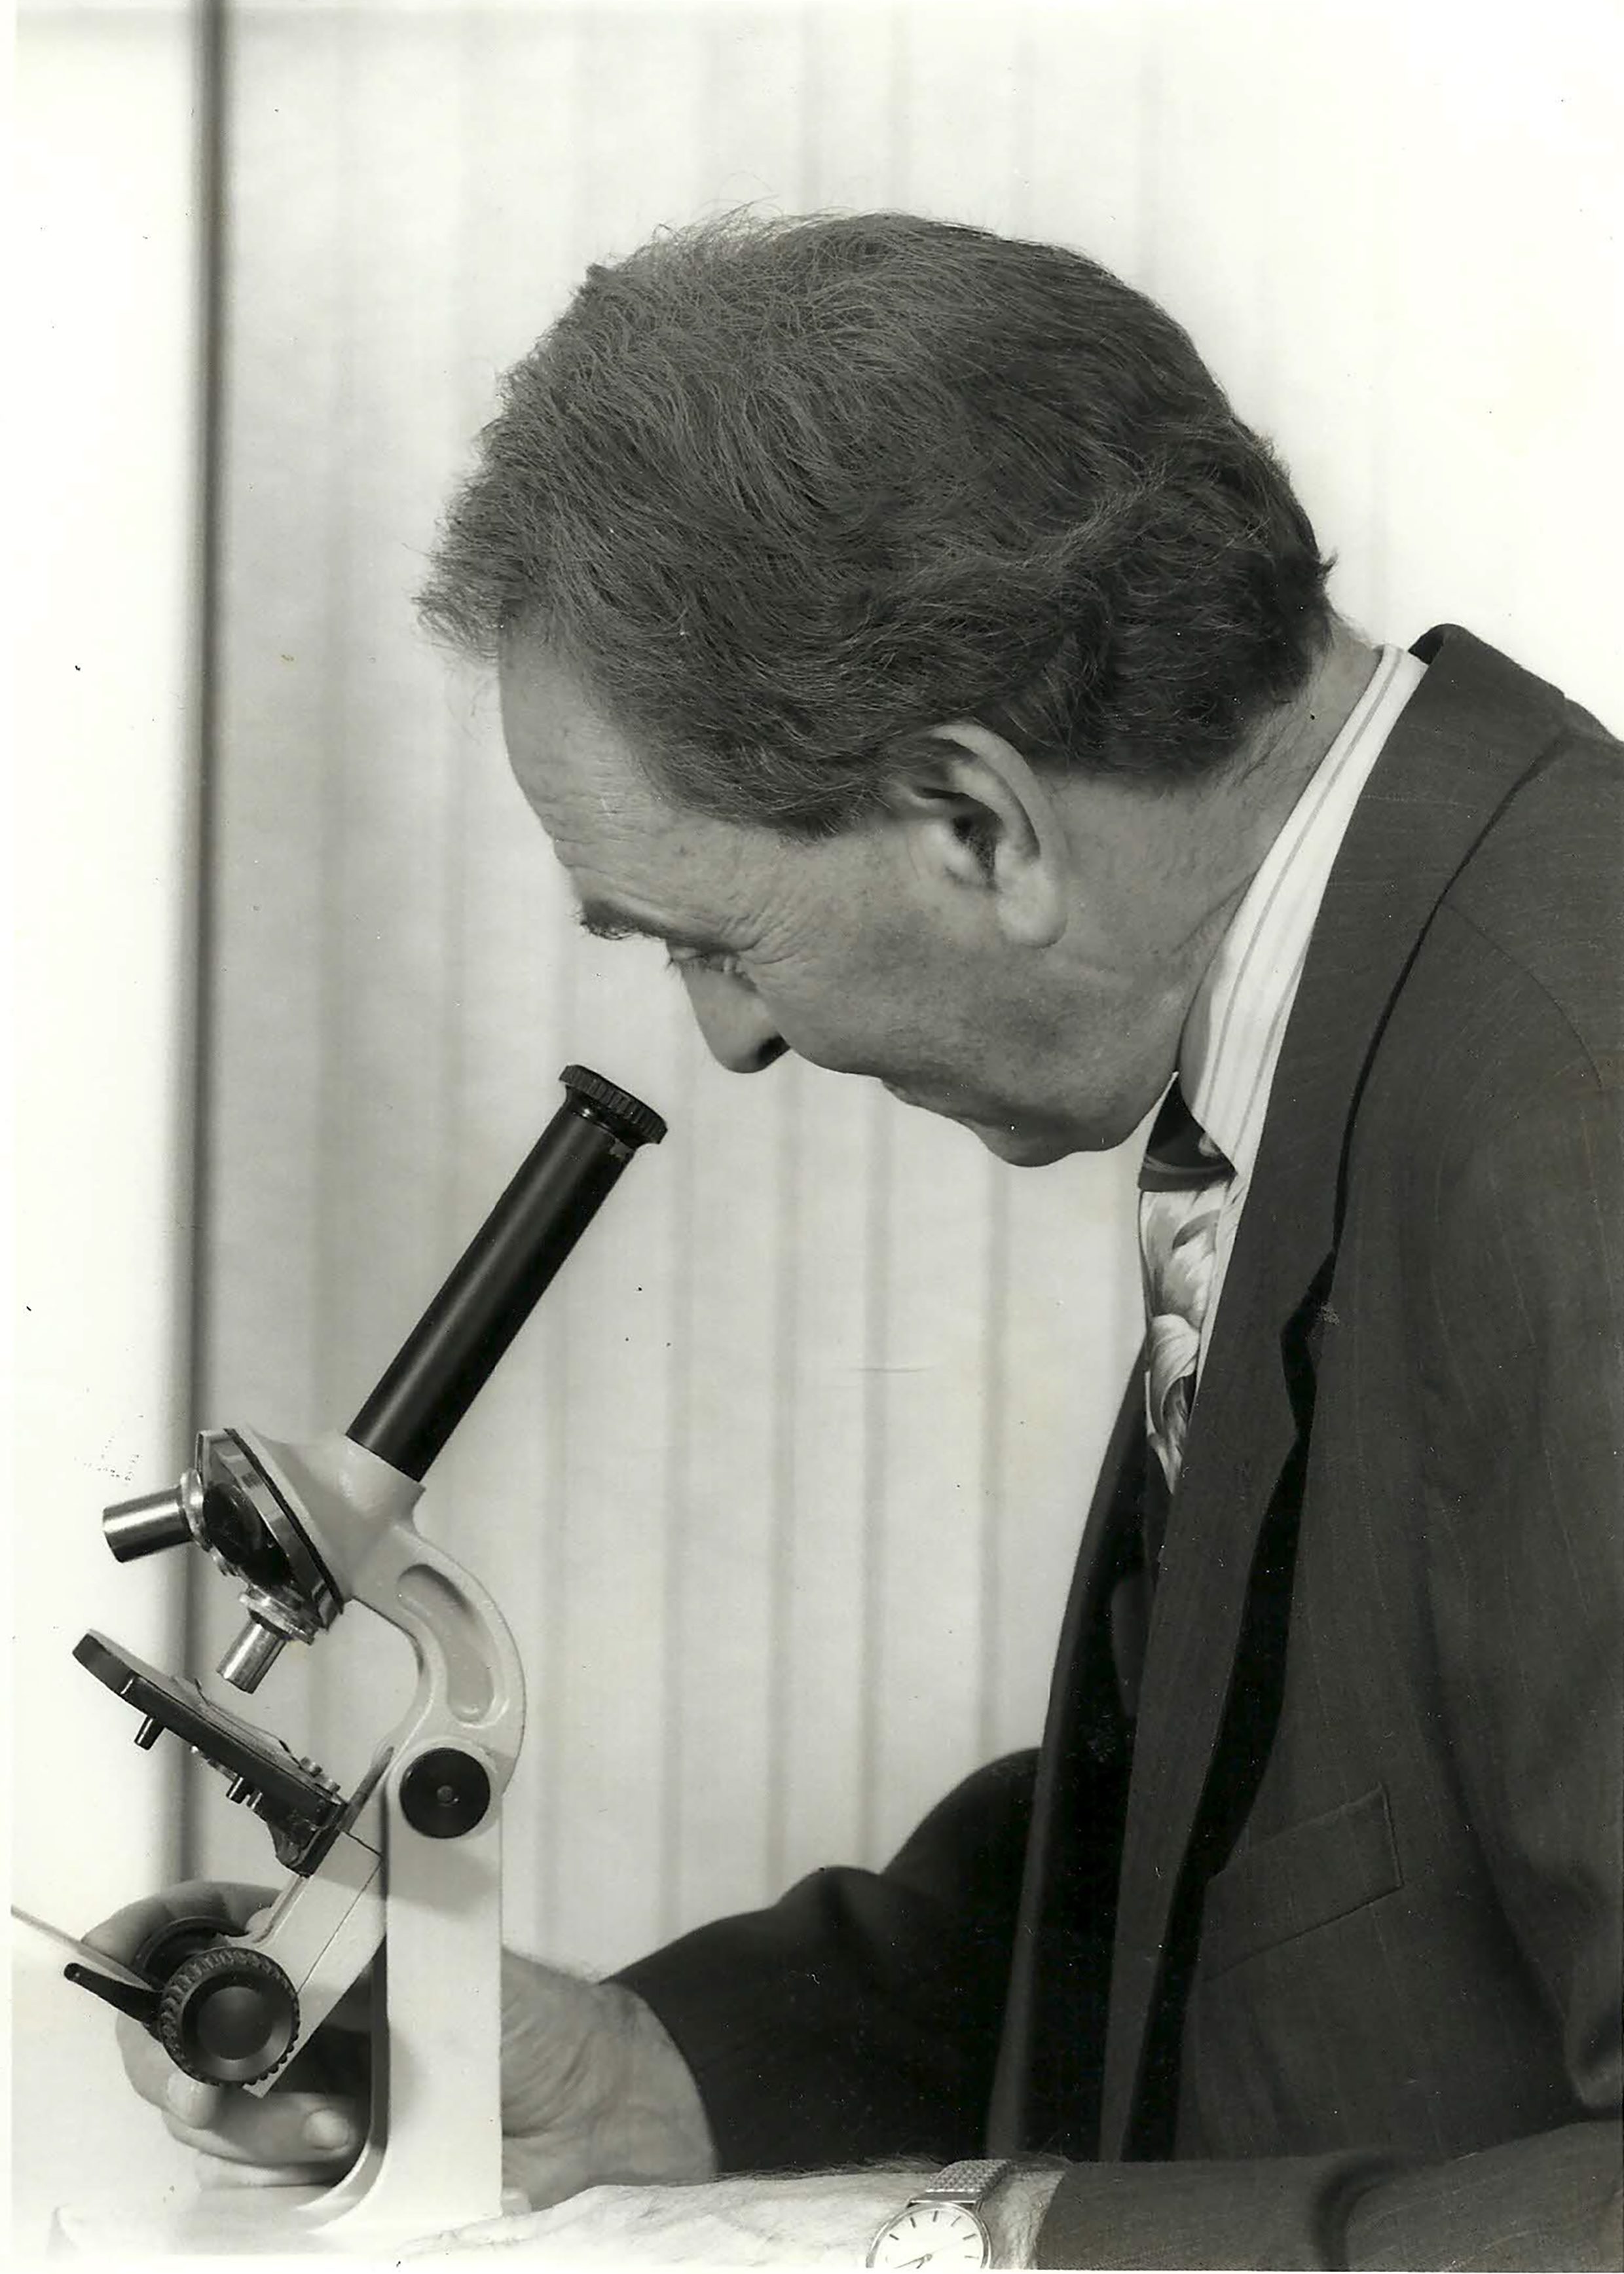 P.G. Davies B.Sc., M.Phil., C.Chem., F.R.S.C., M.I.T.   Member of The Institute of Trichologists, London.